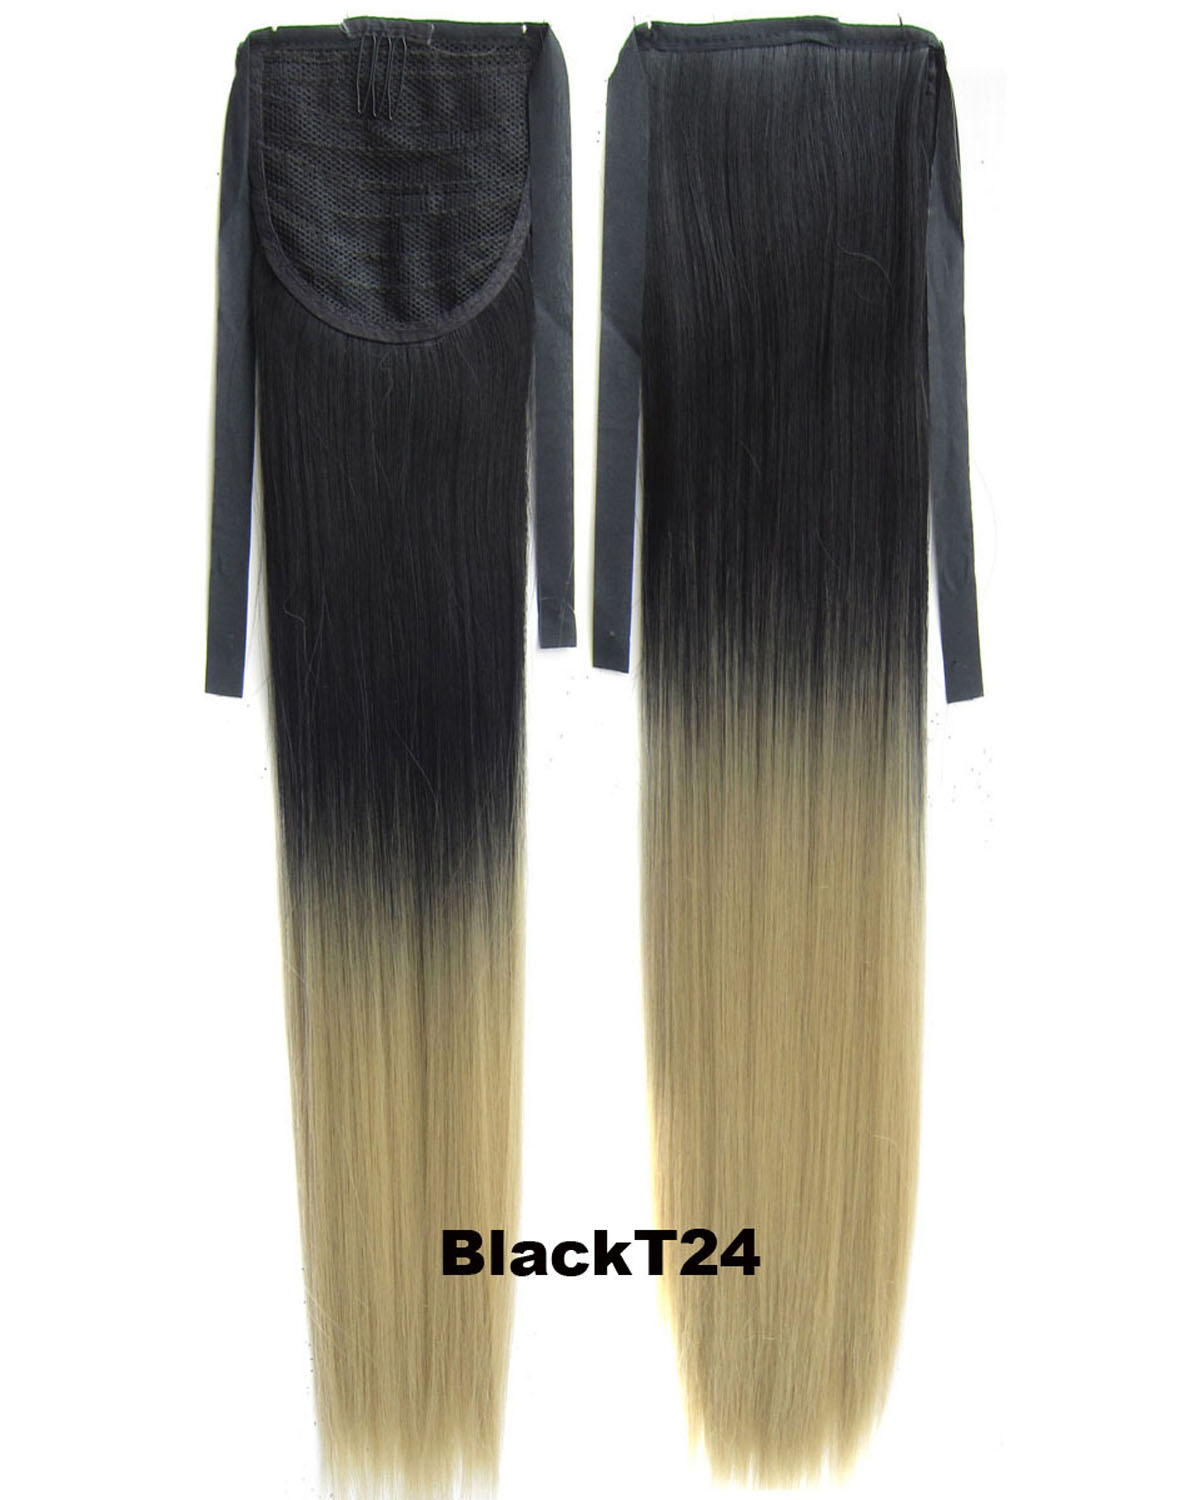 22 Inch Lady Straight Charming Lace/Ribbon Synthetic Hair Ponytail  BlackT24 Ombre